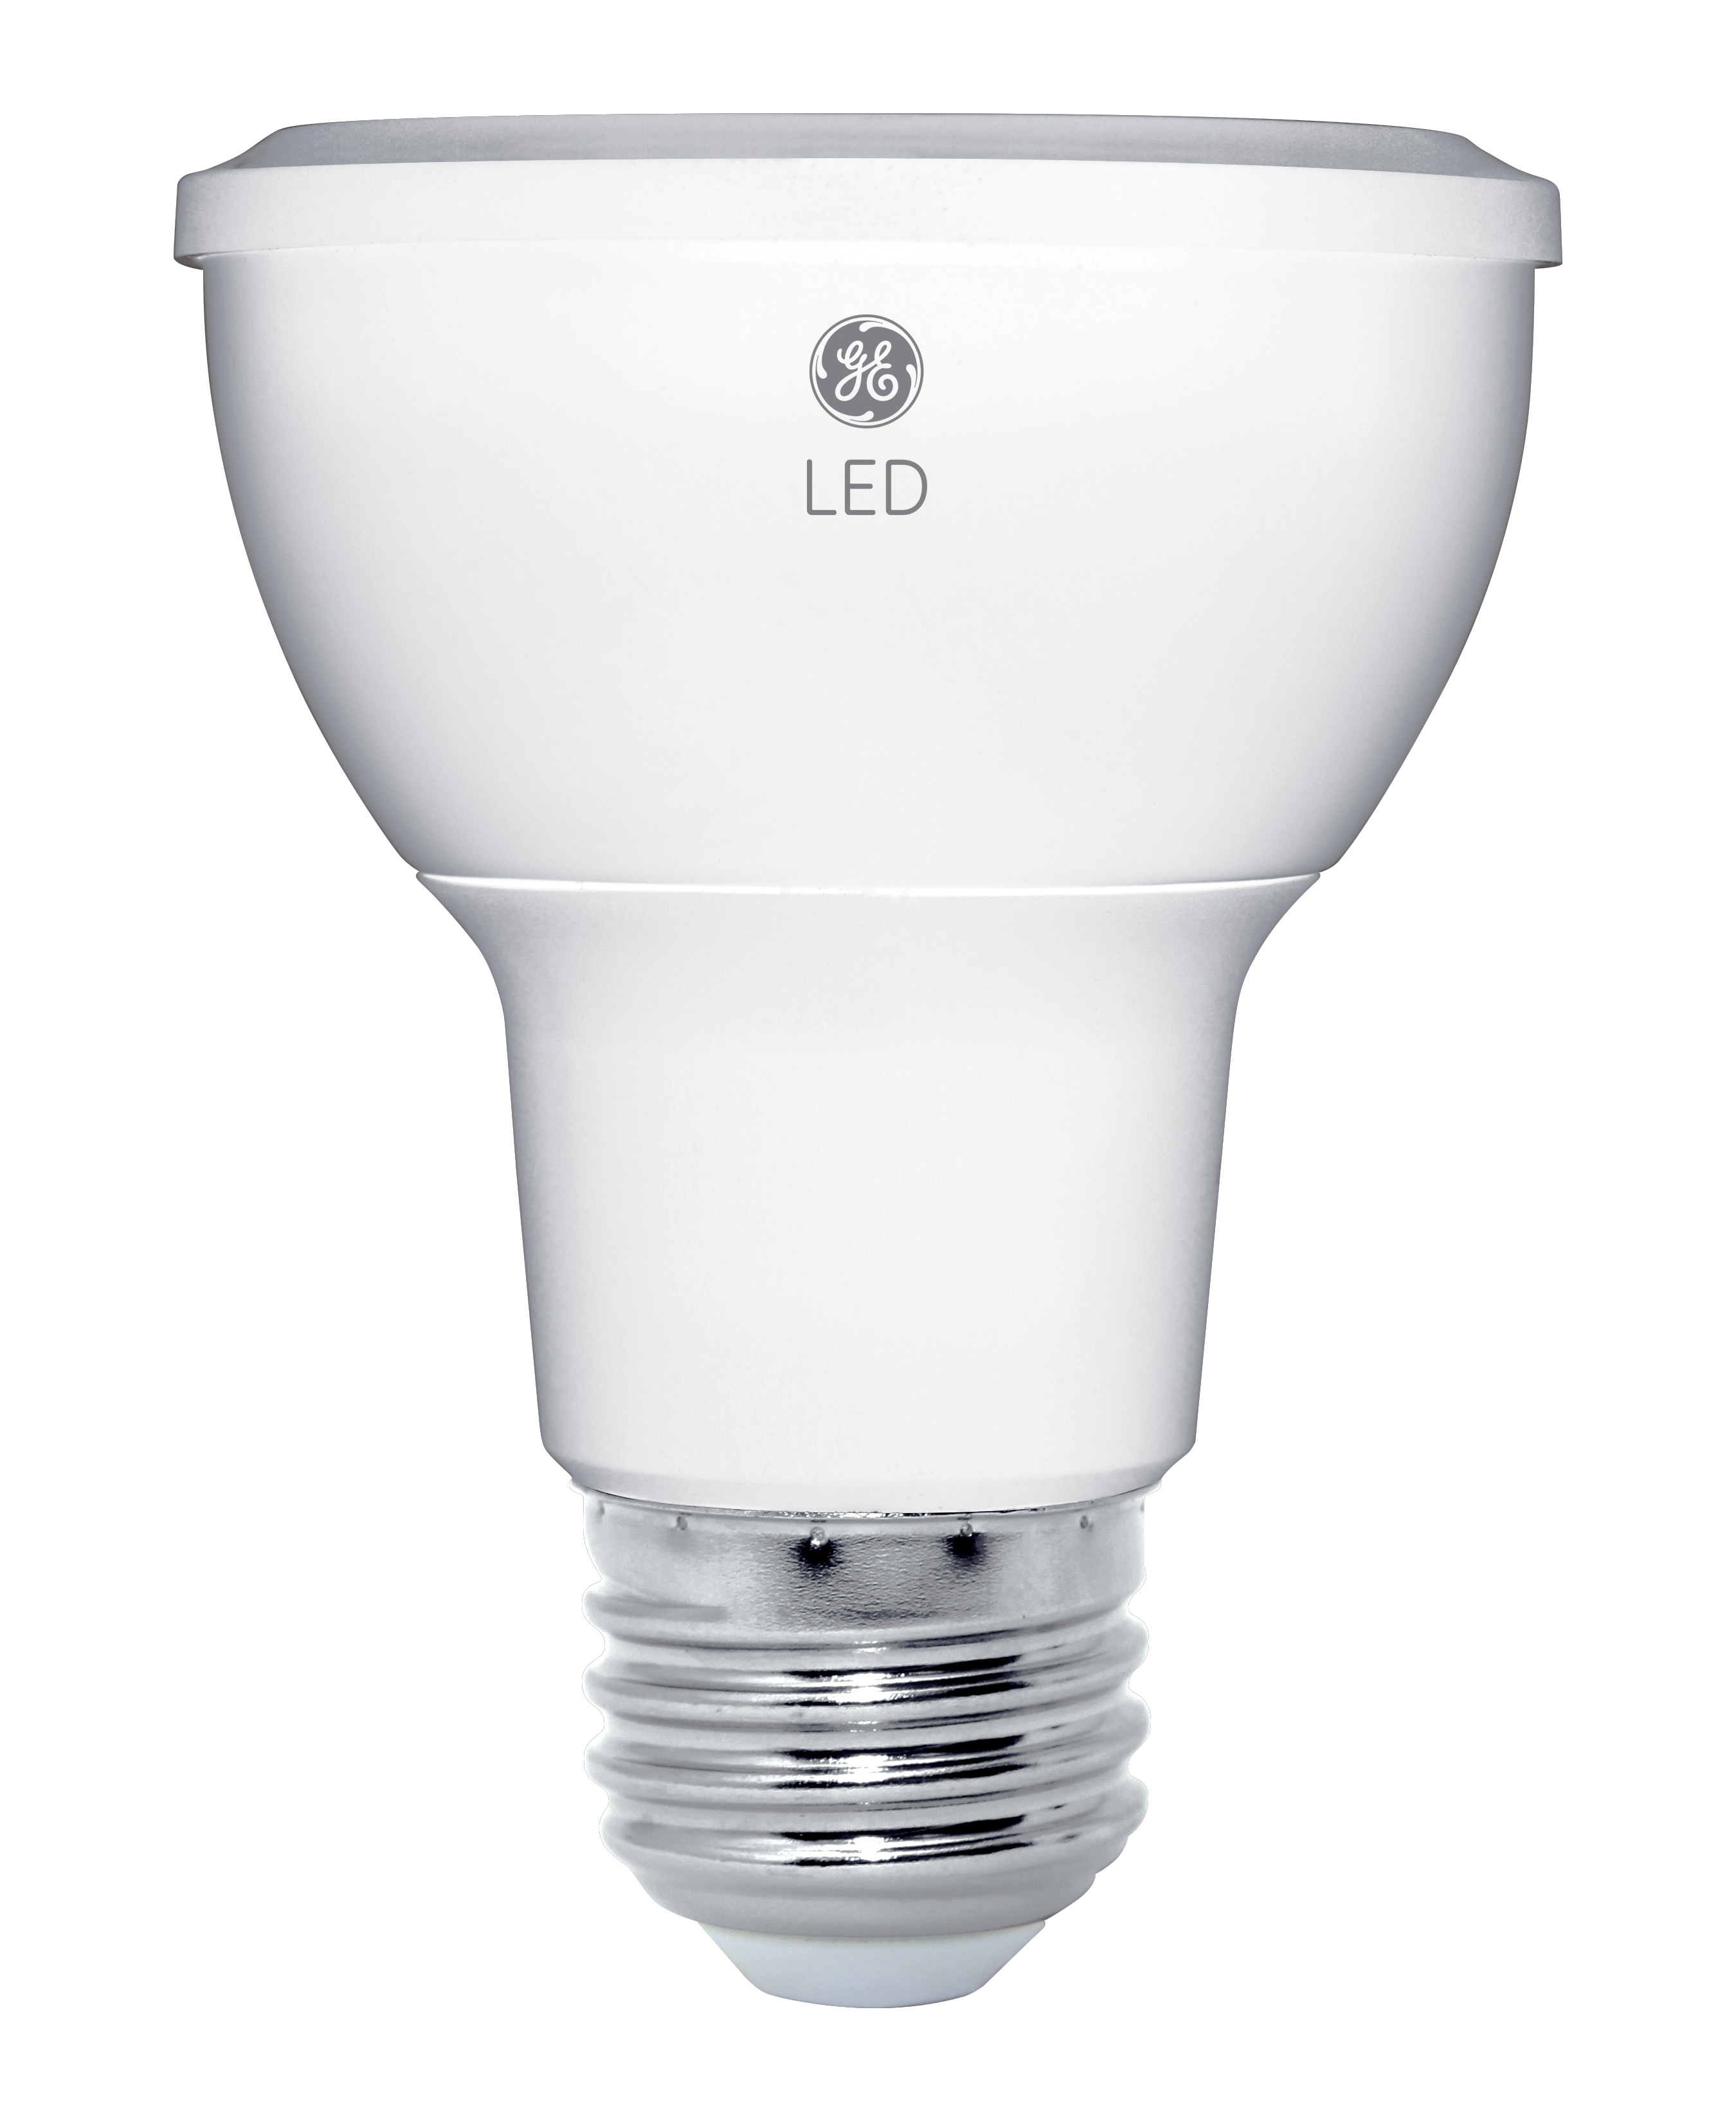 Ge Led Bulbs: 5 Consumer Trends Driving GE LED Lighting Design, Consumer